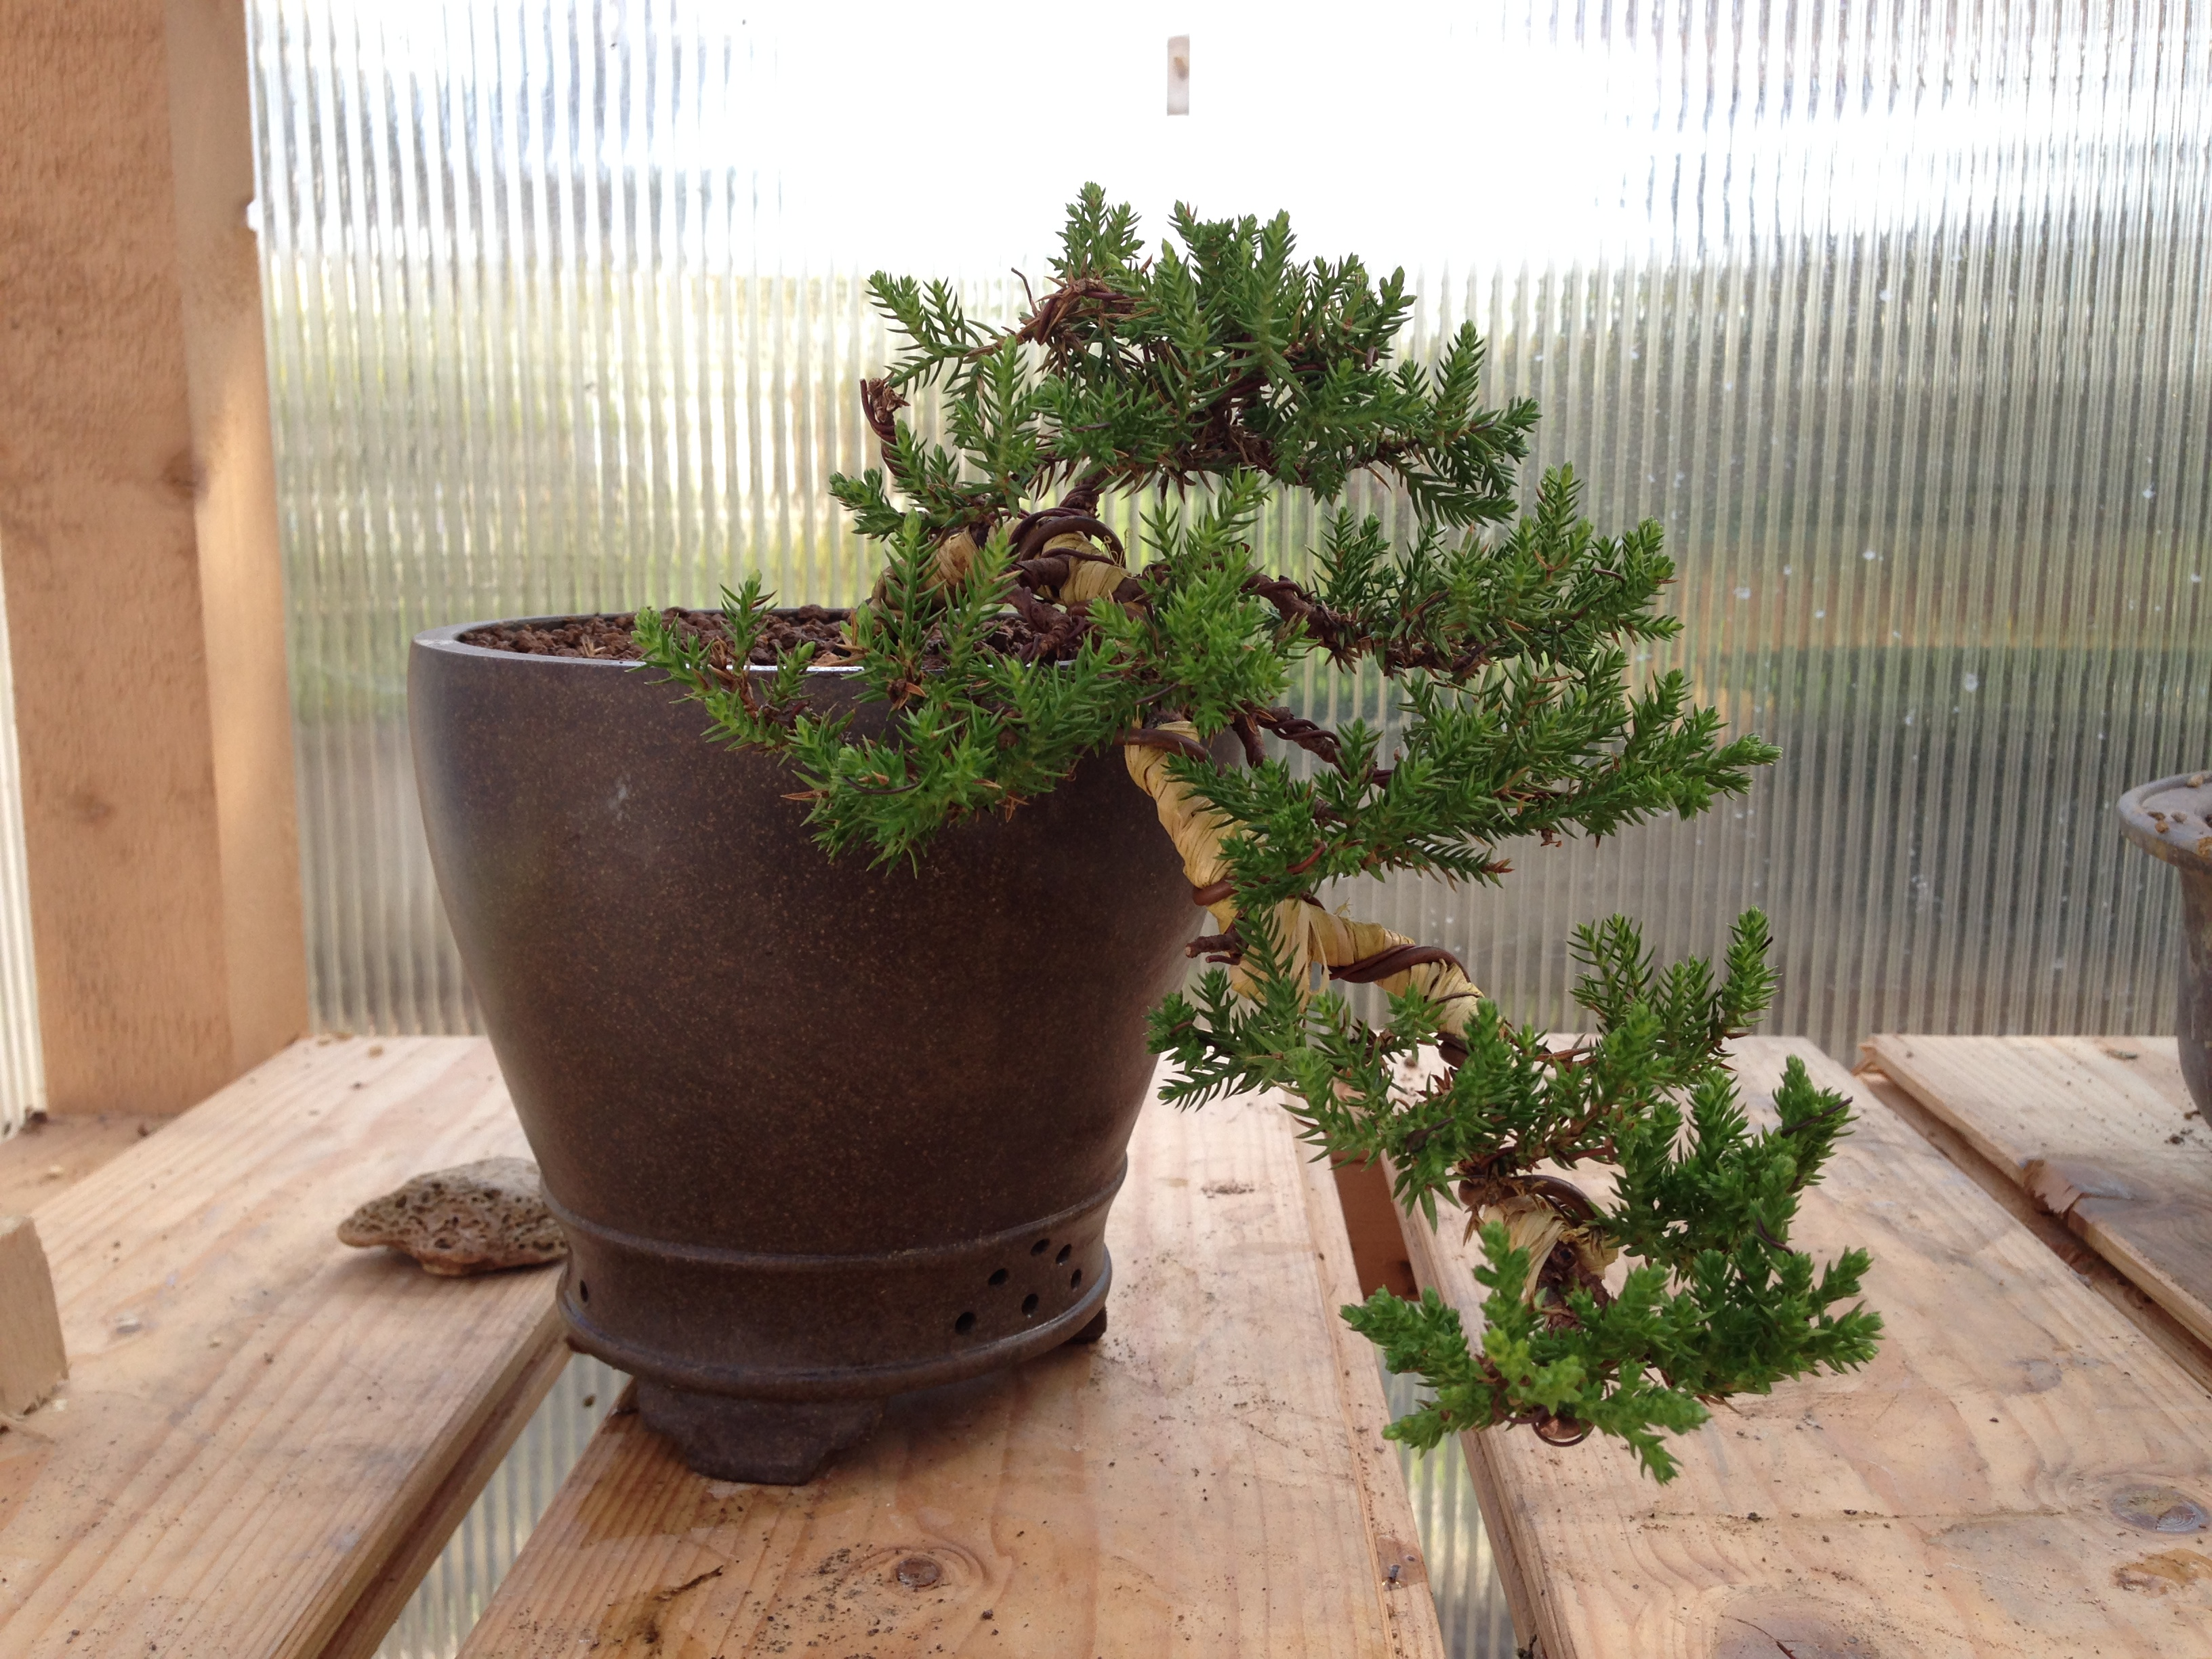 Vendita vasi bonsai 28 images mercatino bonsai forum for Bonsai vasi